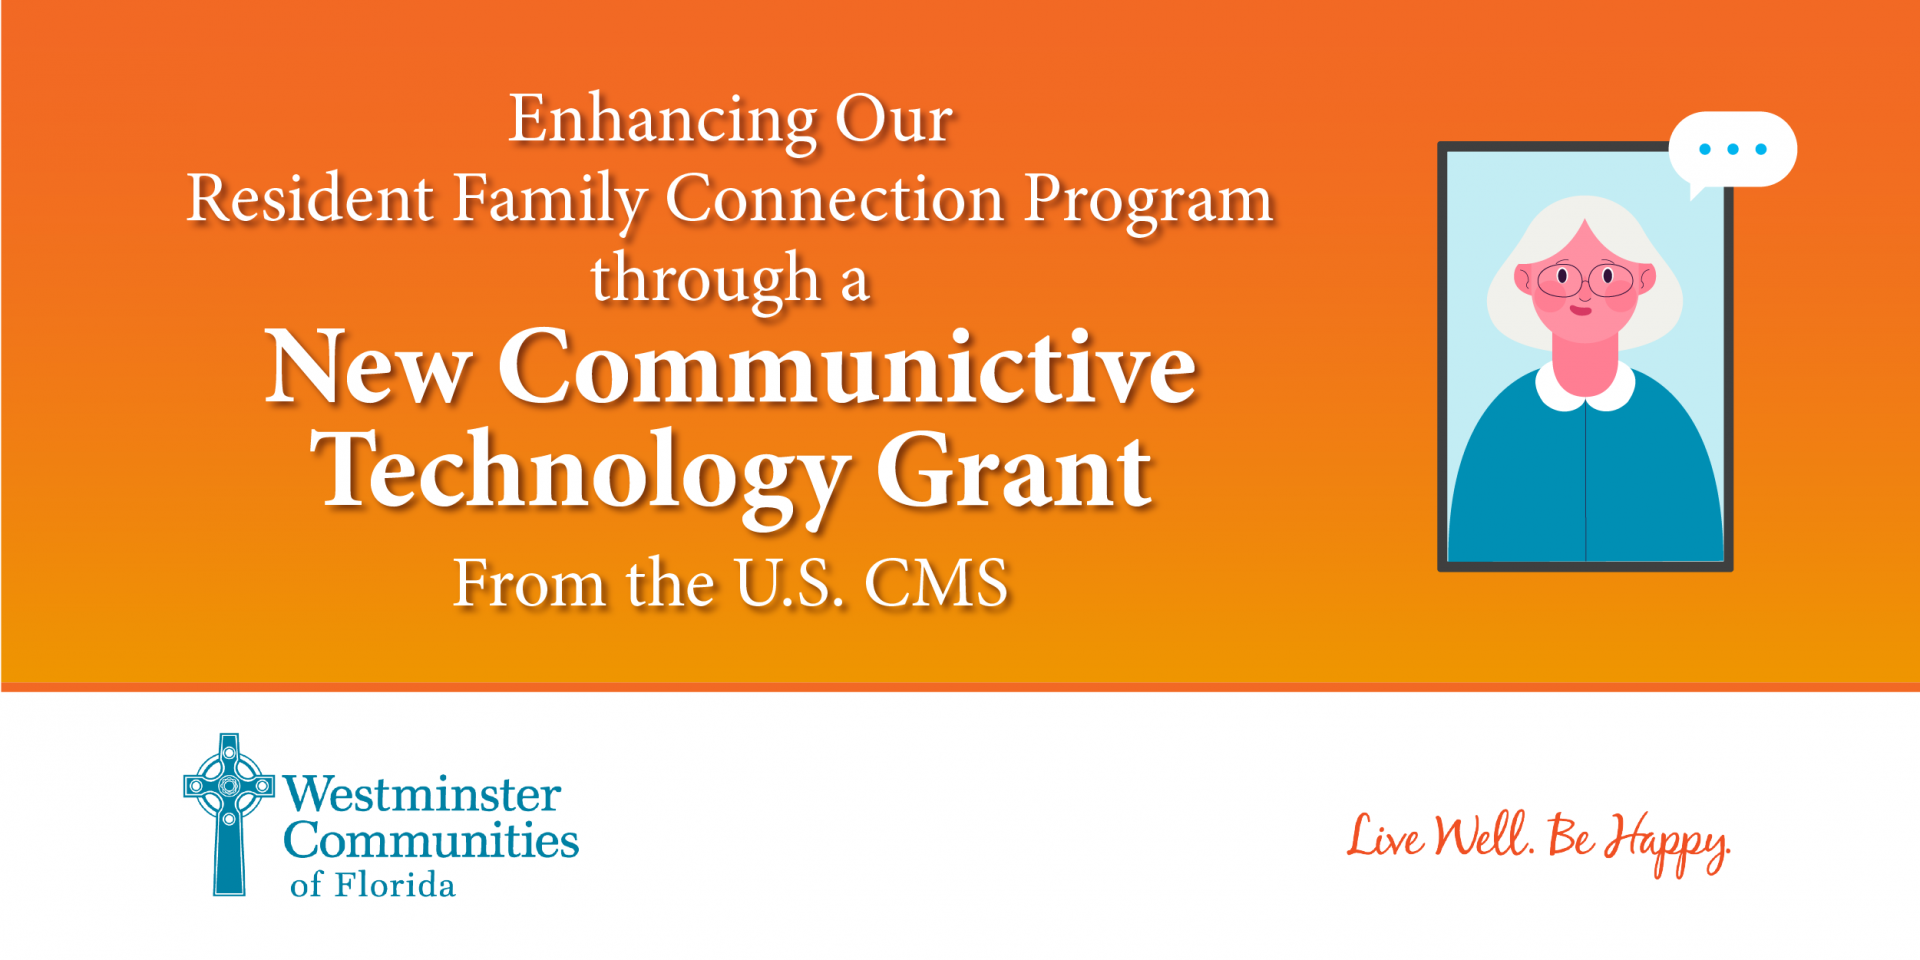 $20,000 For Tablets From New Communicative Technology Grant